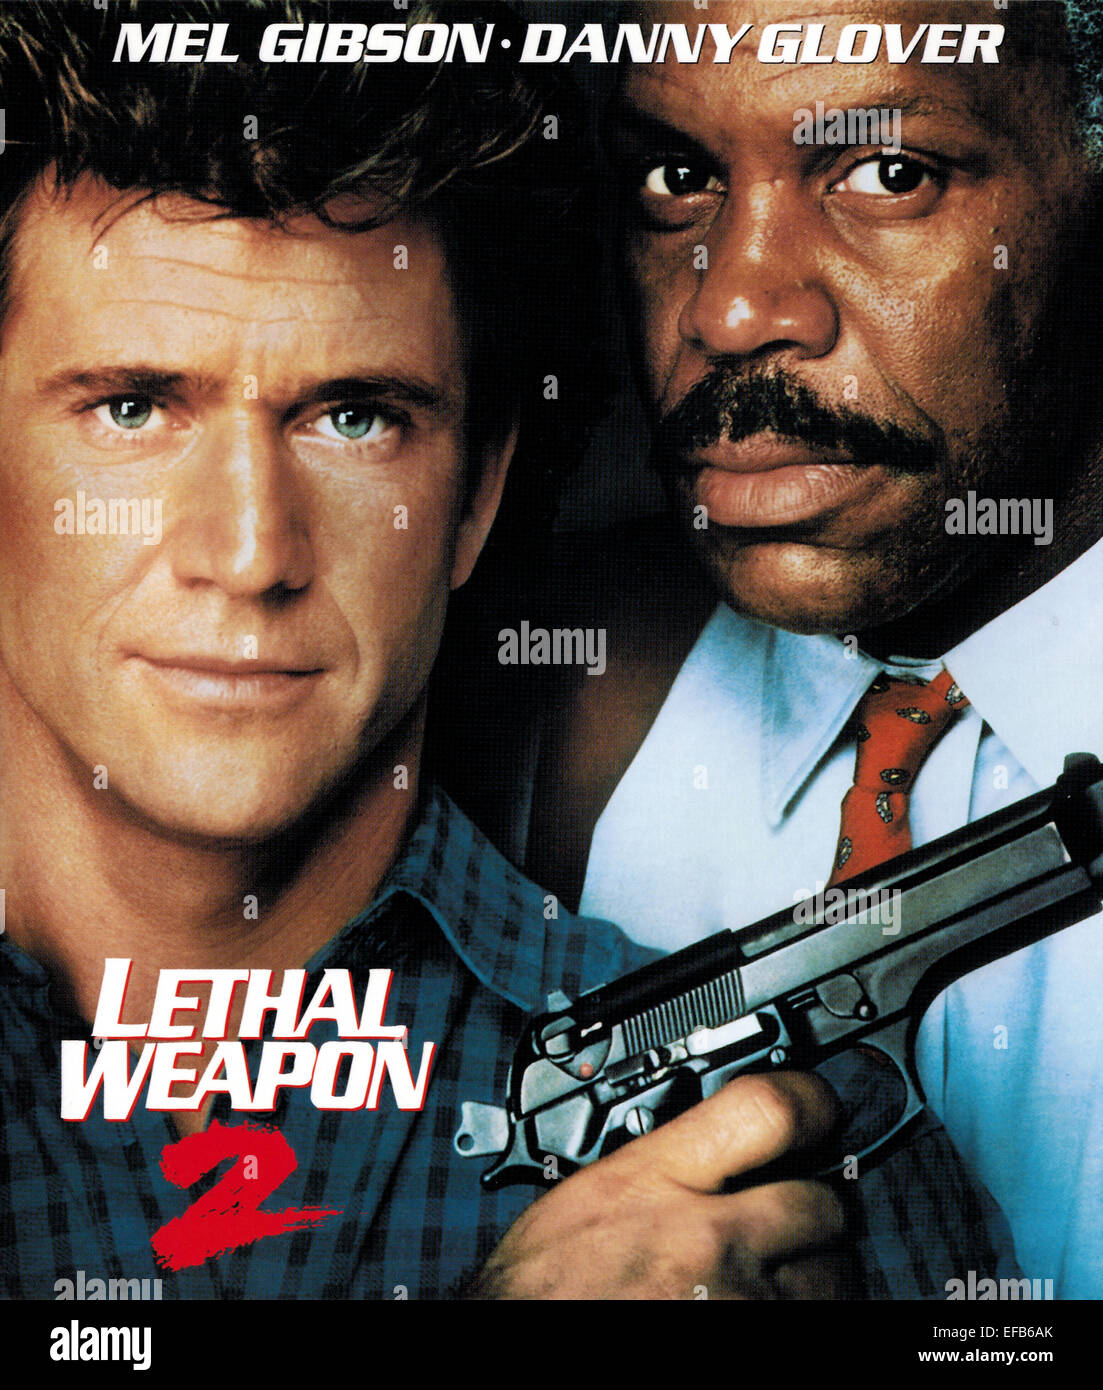 mel gibson amp danny glover poster lethal weapon 2 1989